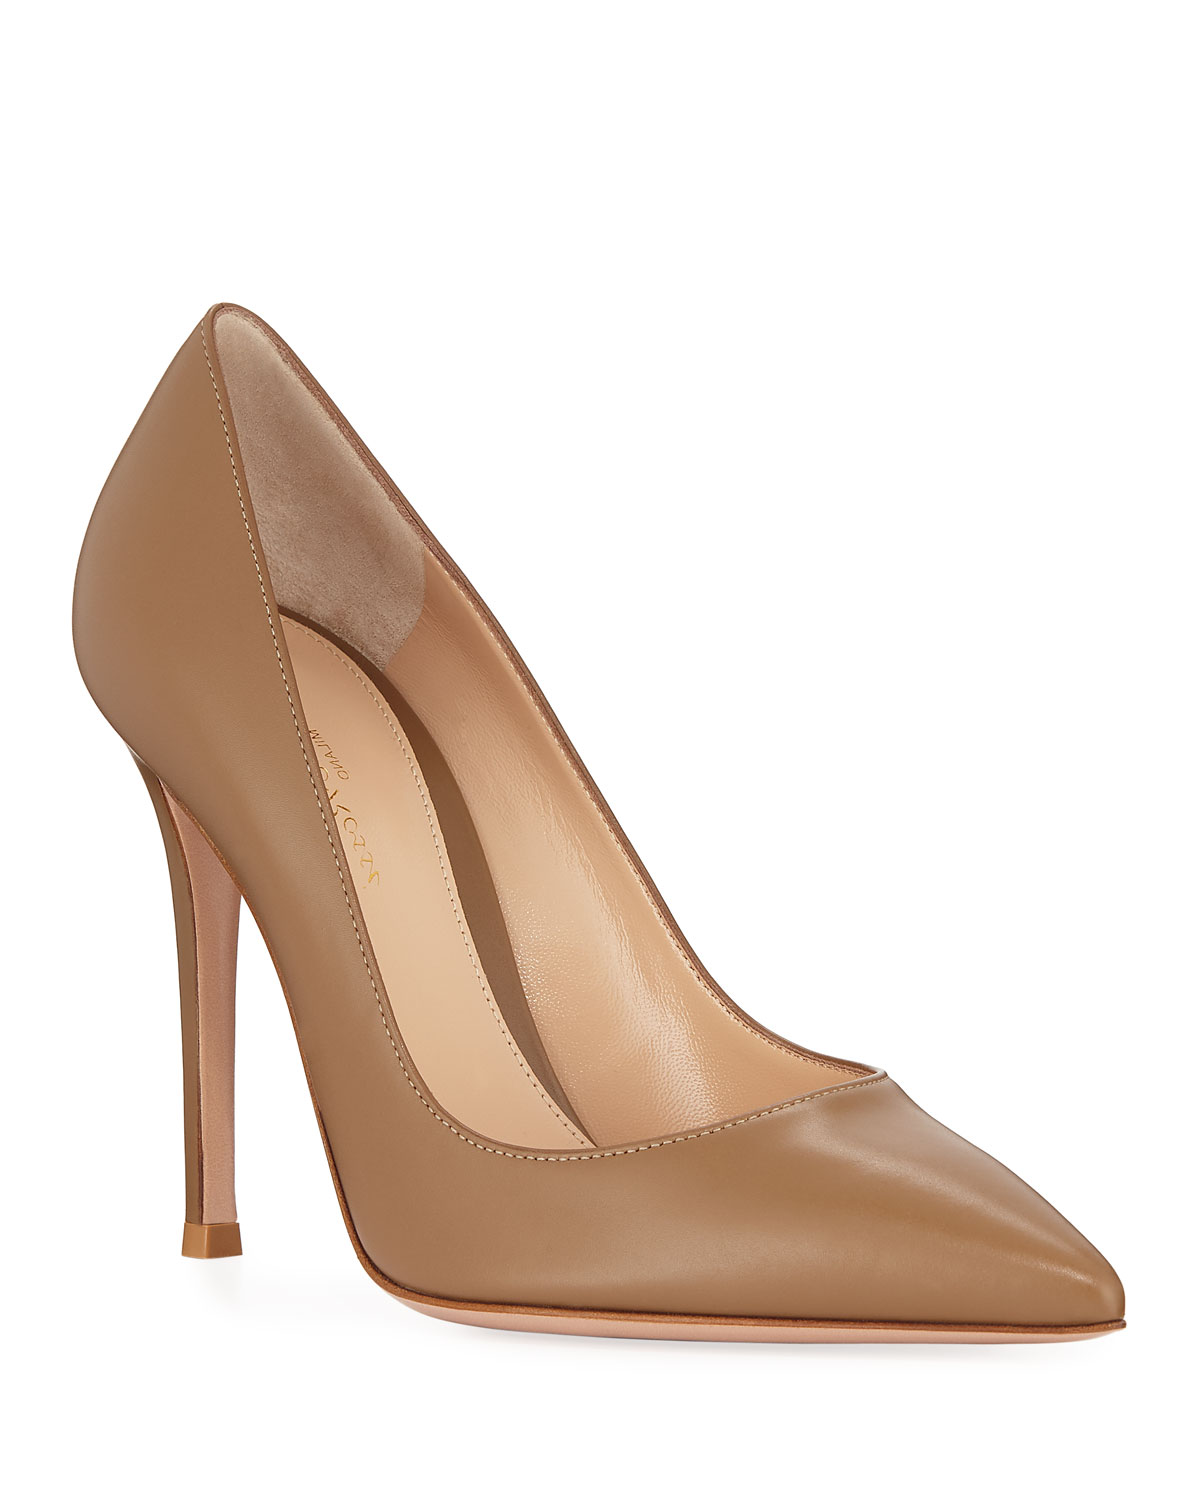 Gianvito 105mm Leather Point-Toe Pumps